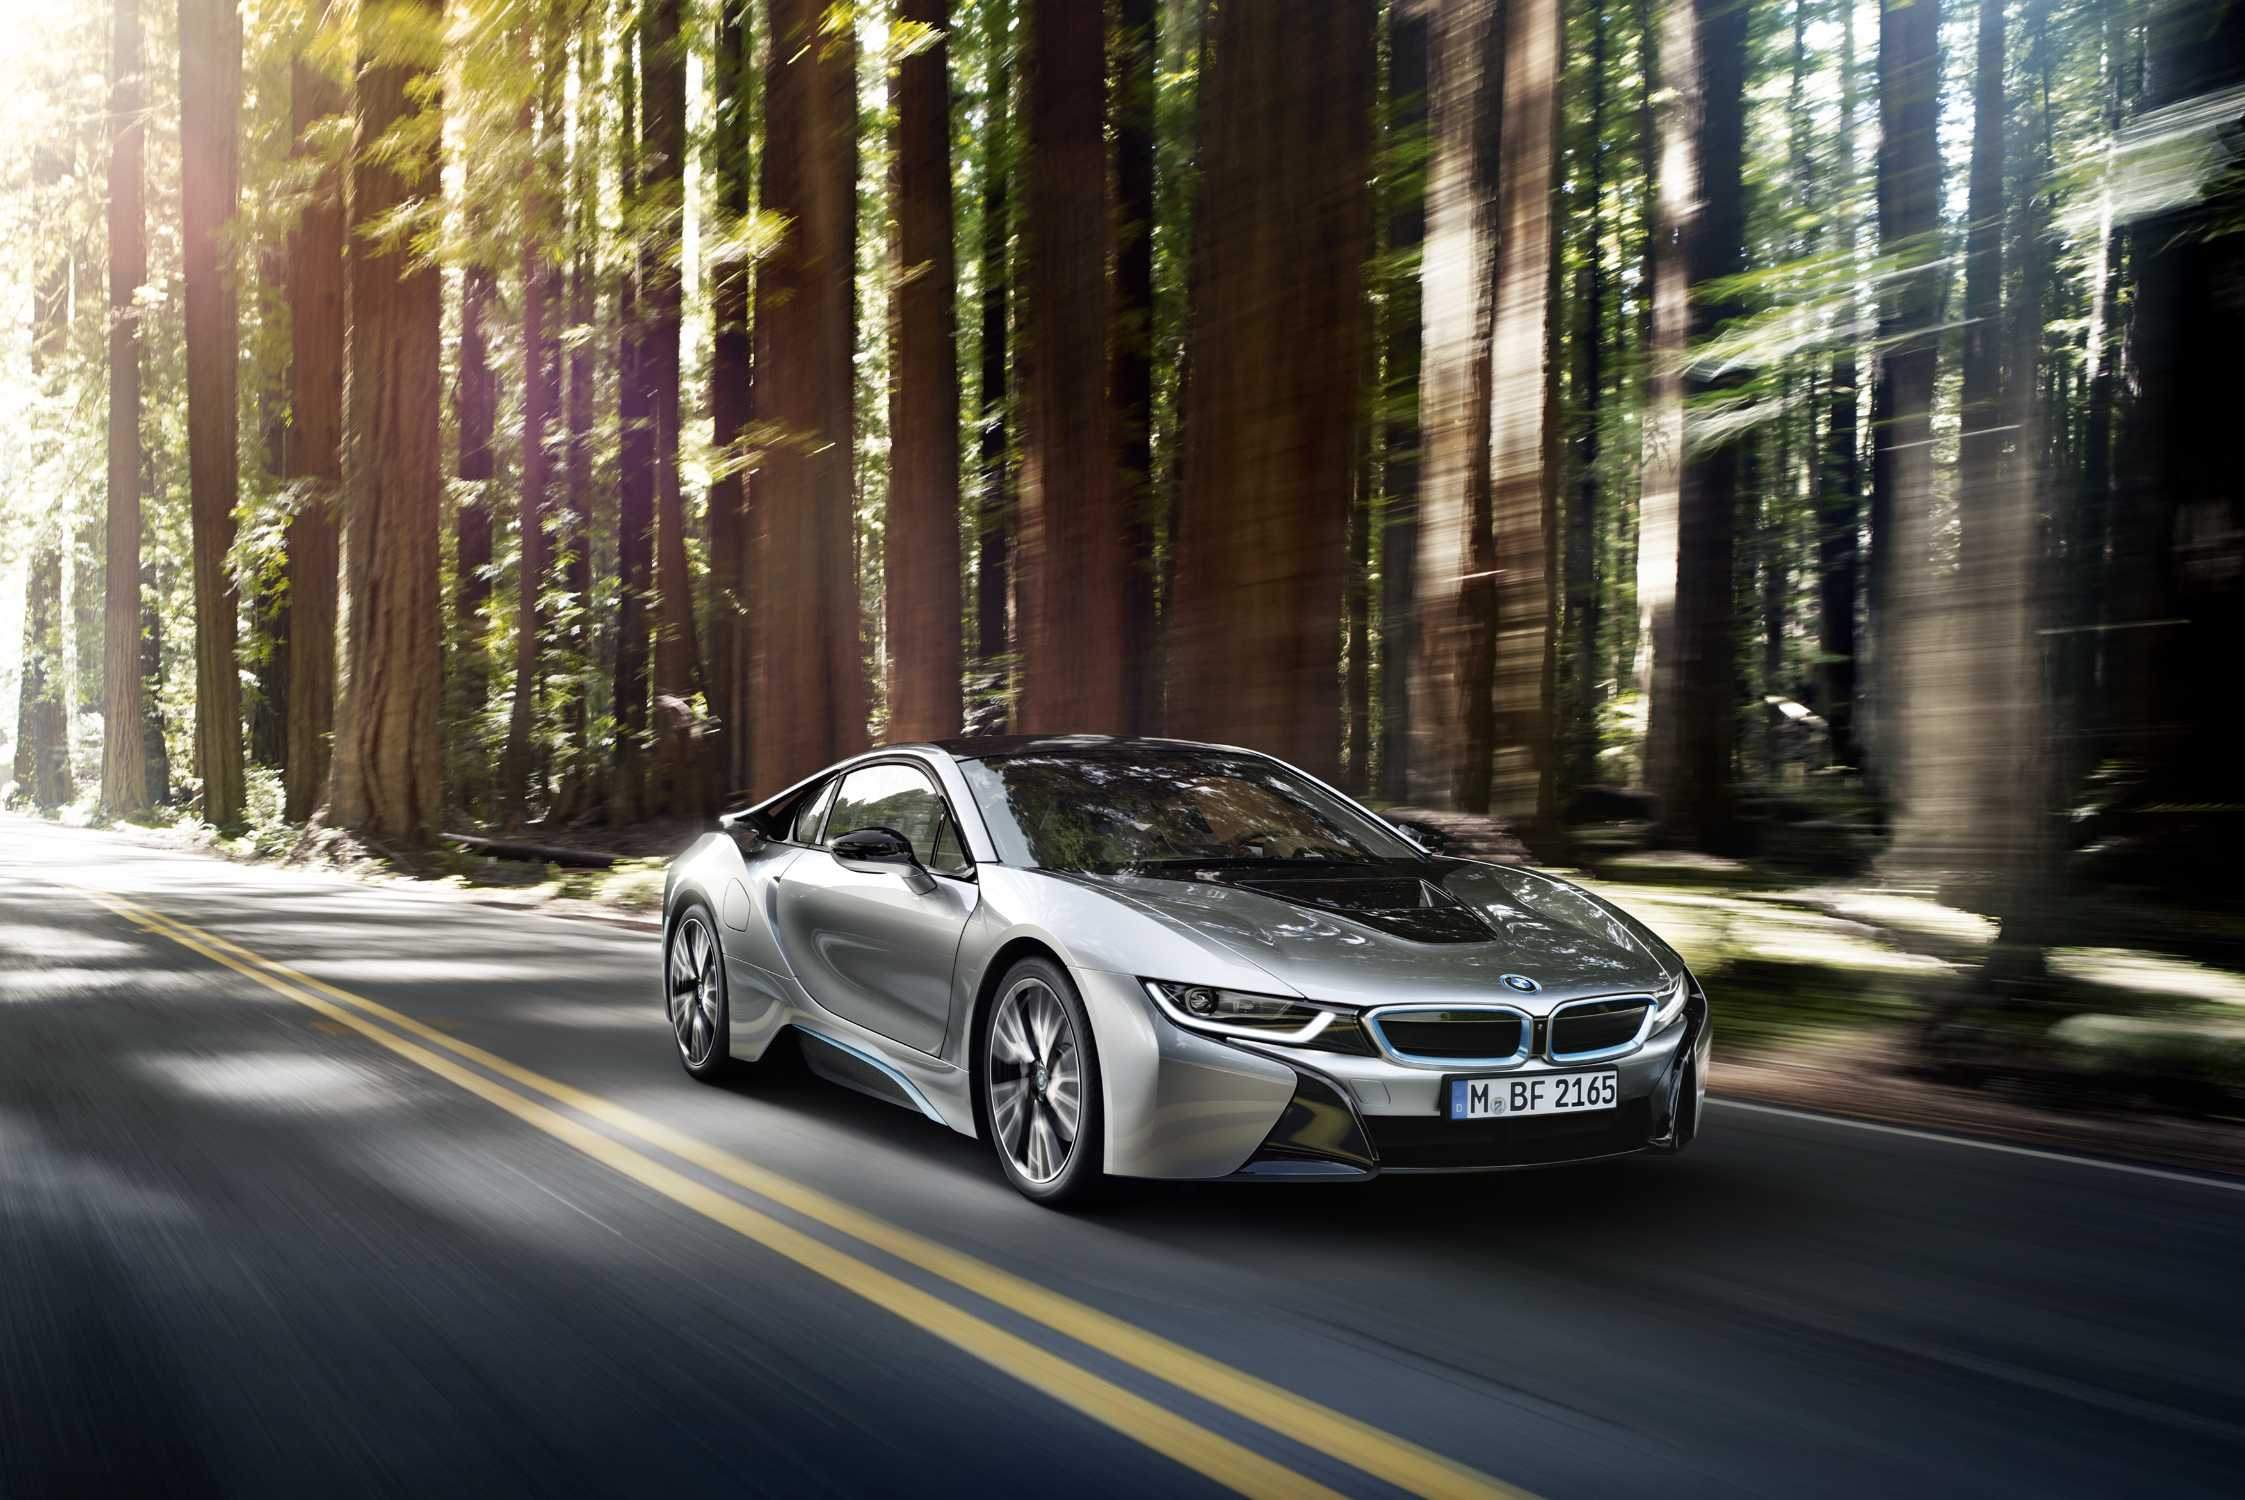 The BMW I8 U2013 Ushering In A New Era Of Sustainable Performance Priced From  $135,700 In The US.